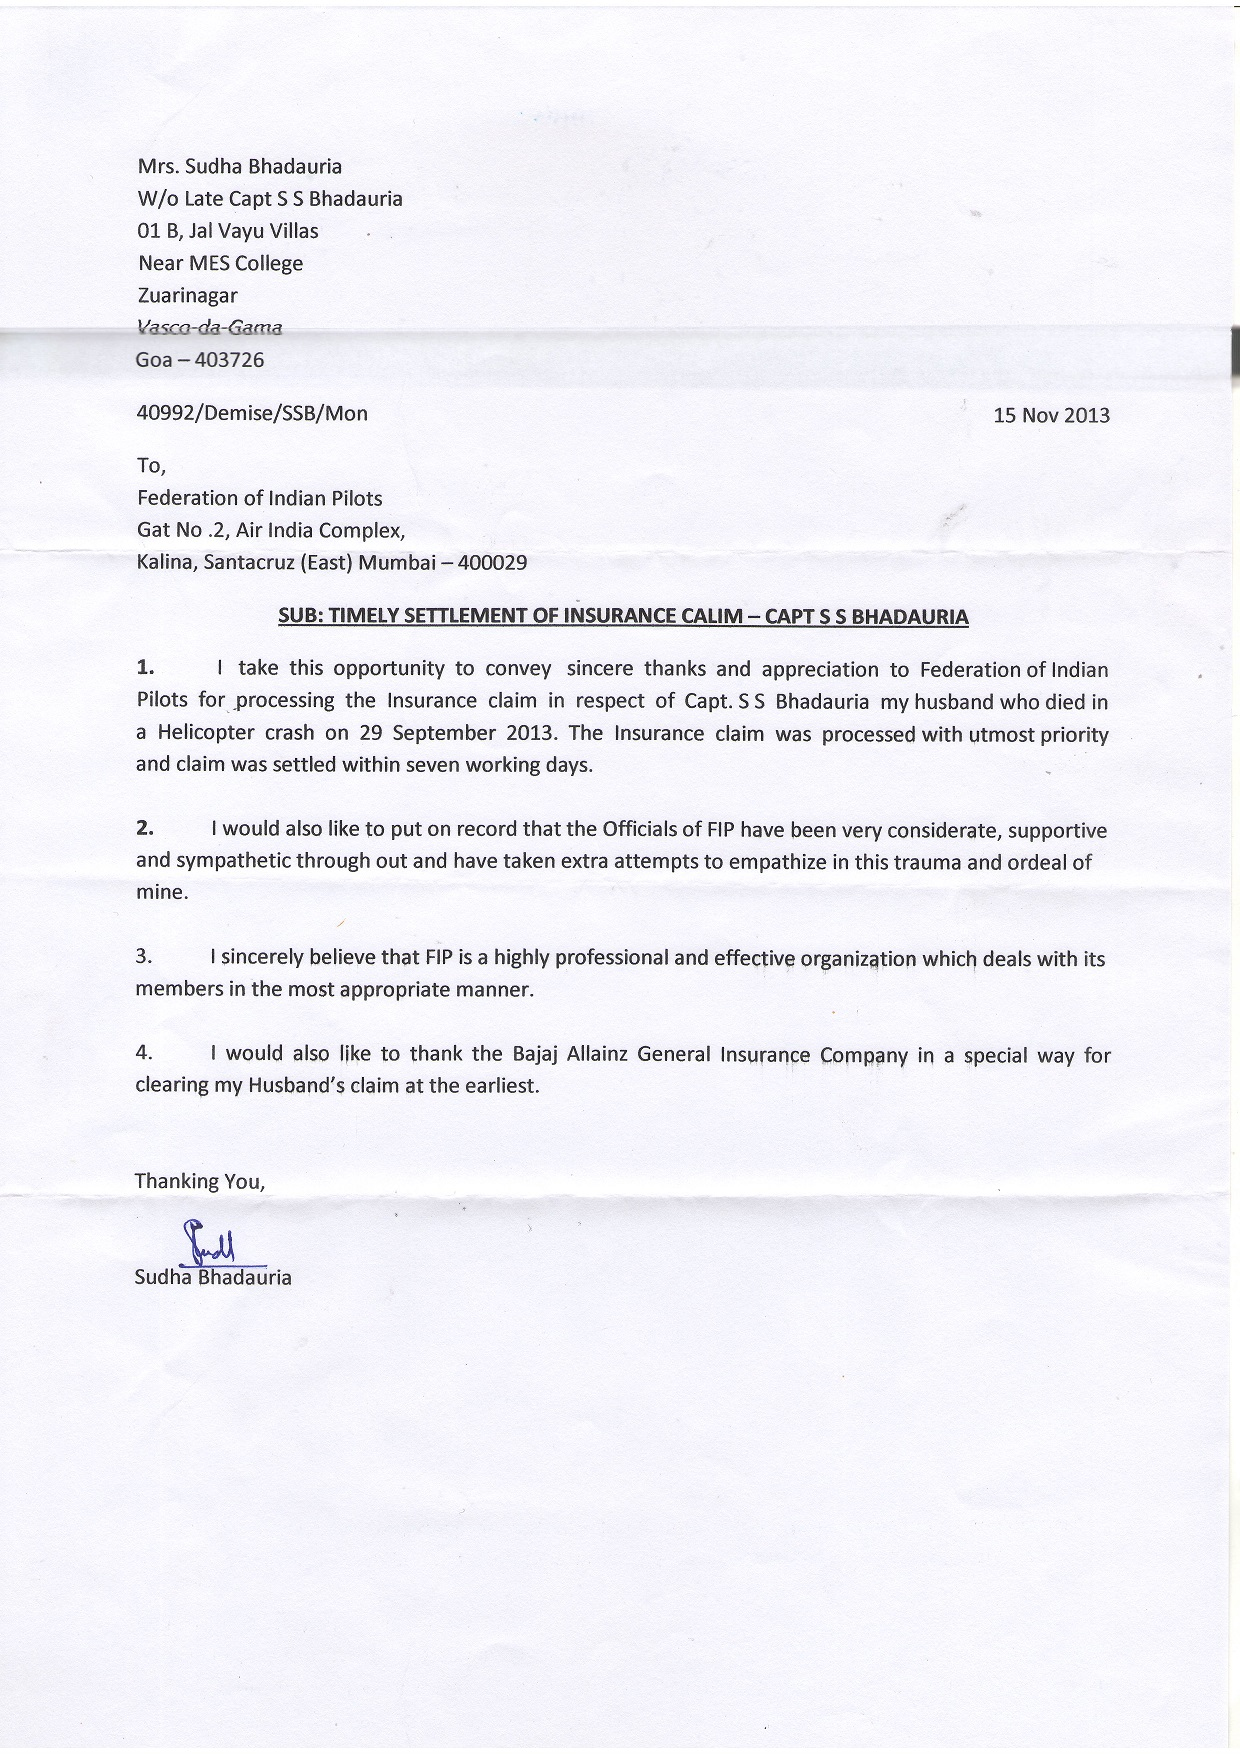 Letter from Mrs.Sudha Bhadauria W/o Late Capt.S.S.Bhadauria